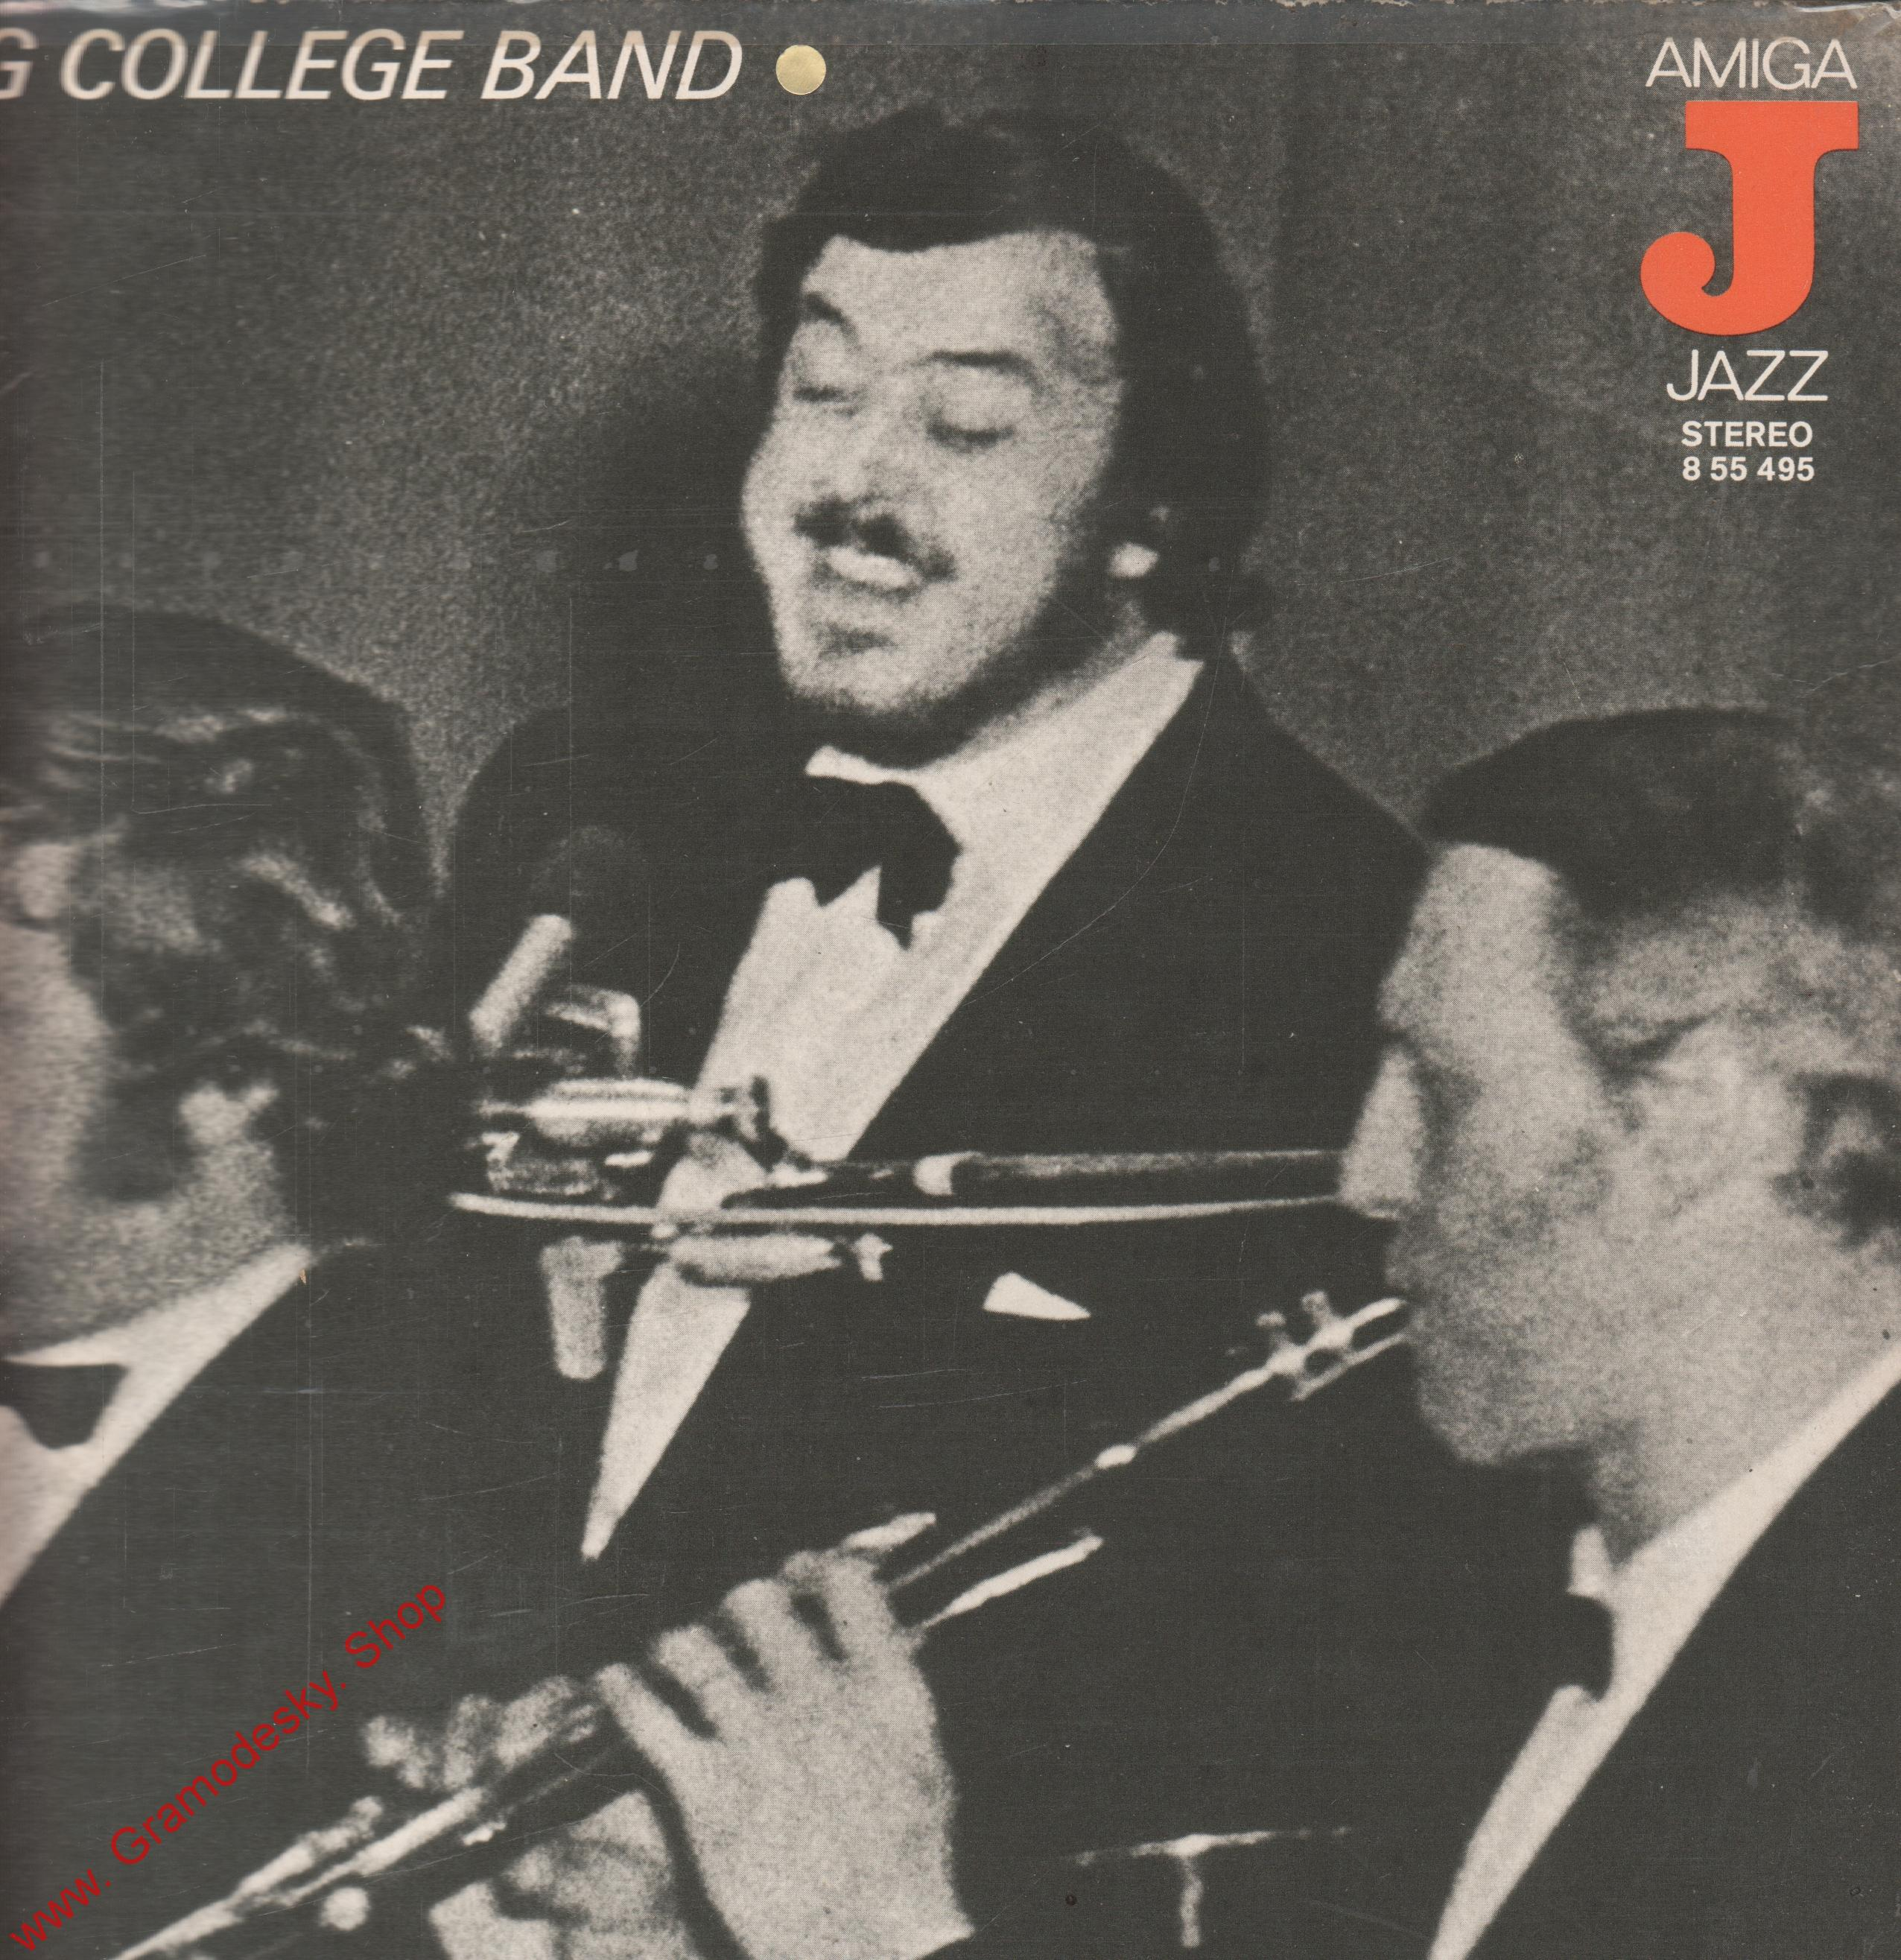 LP The Dutch Swing College Band, Jazz, Stereo, 8 55 495